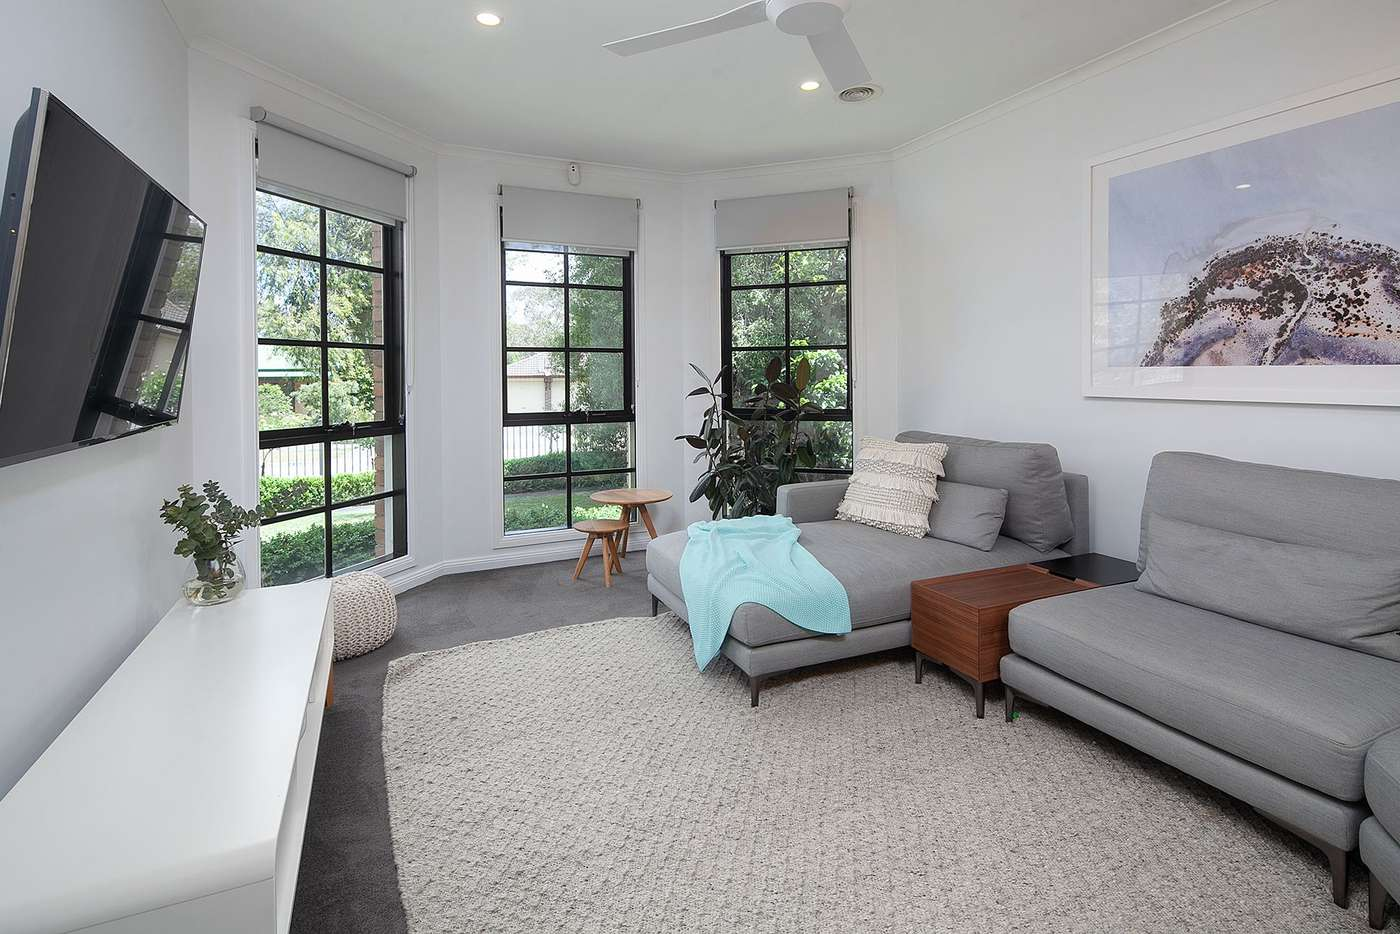 Sixth view of Homely house listing, 32 Cotoneaster Way, Langwarrin VIC 3910